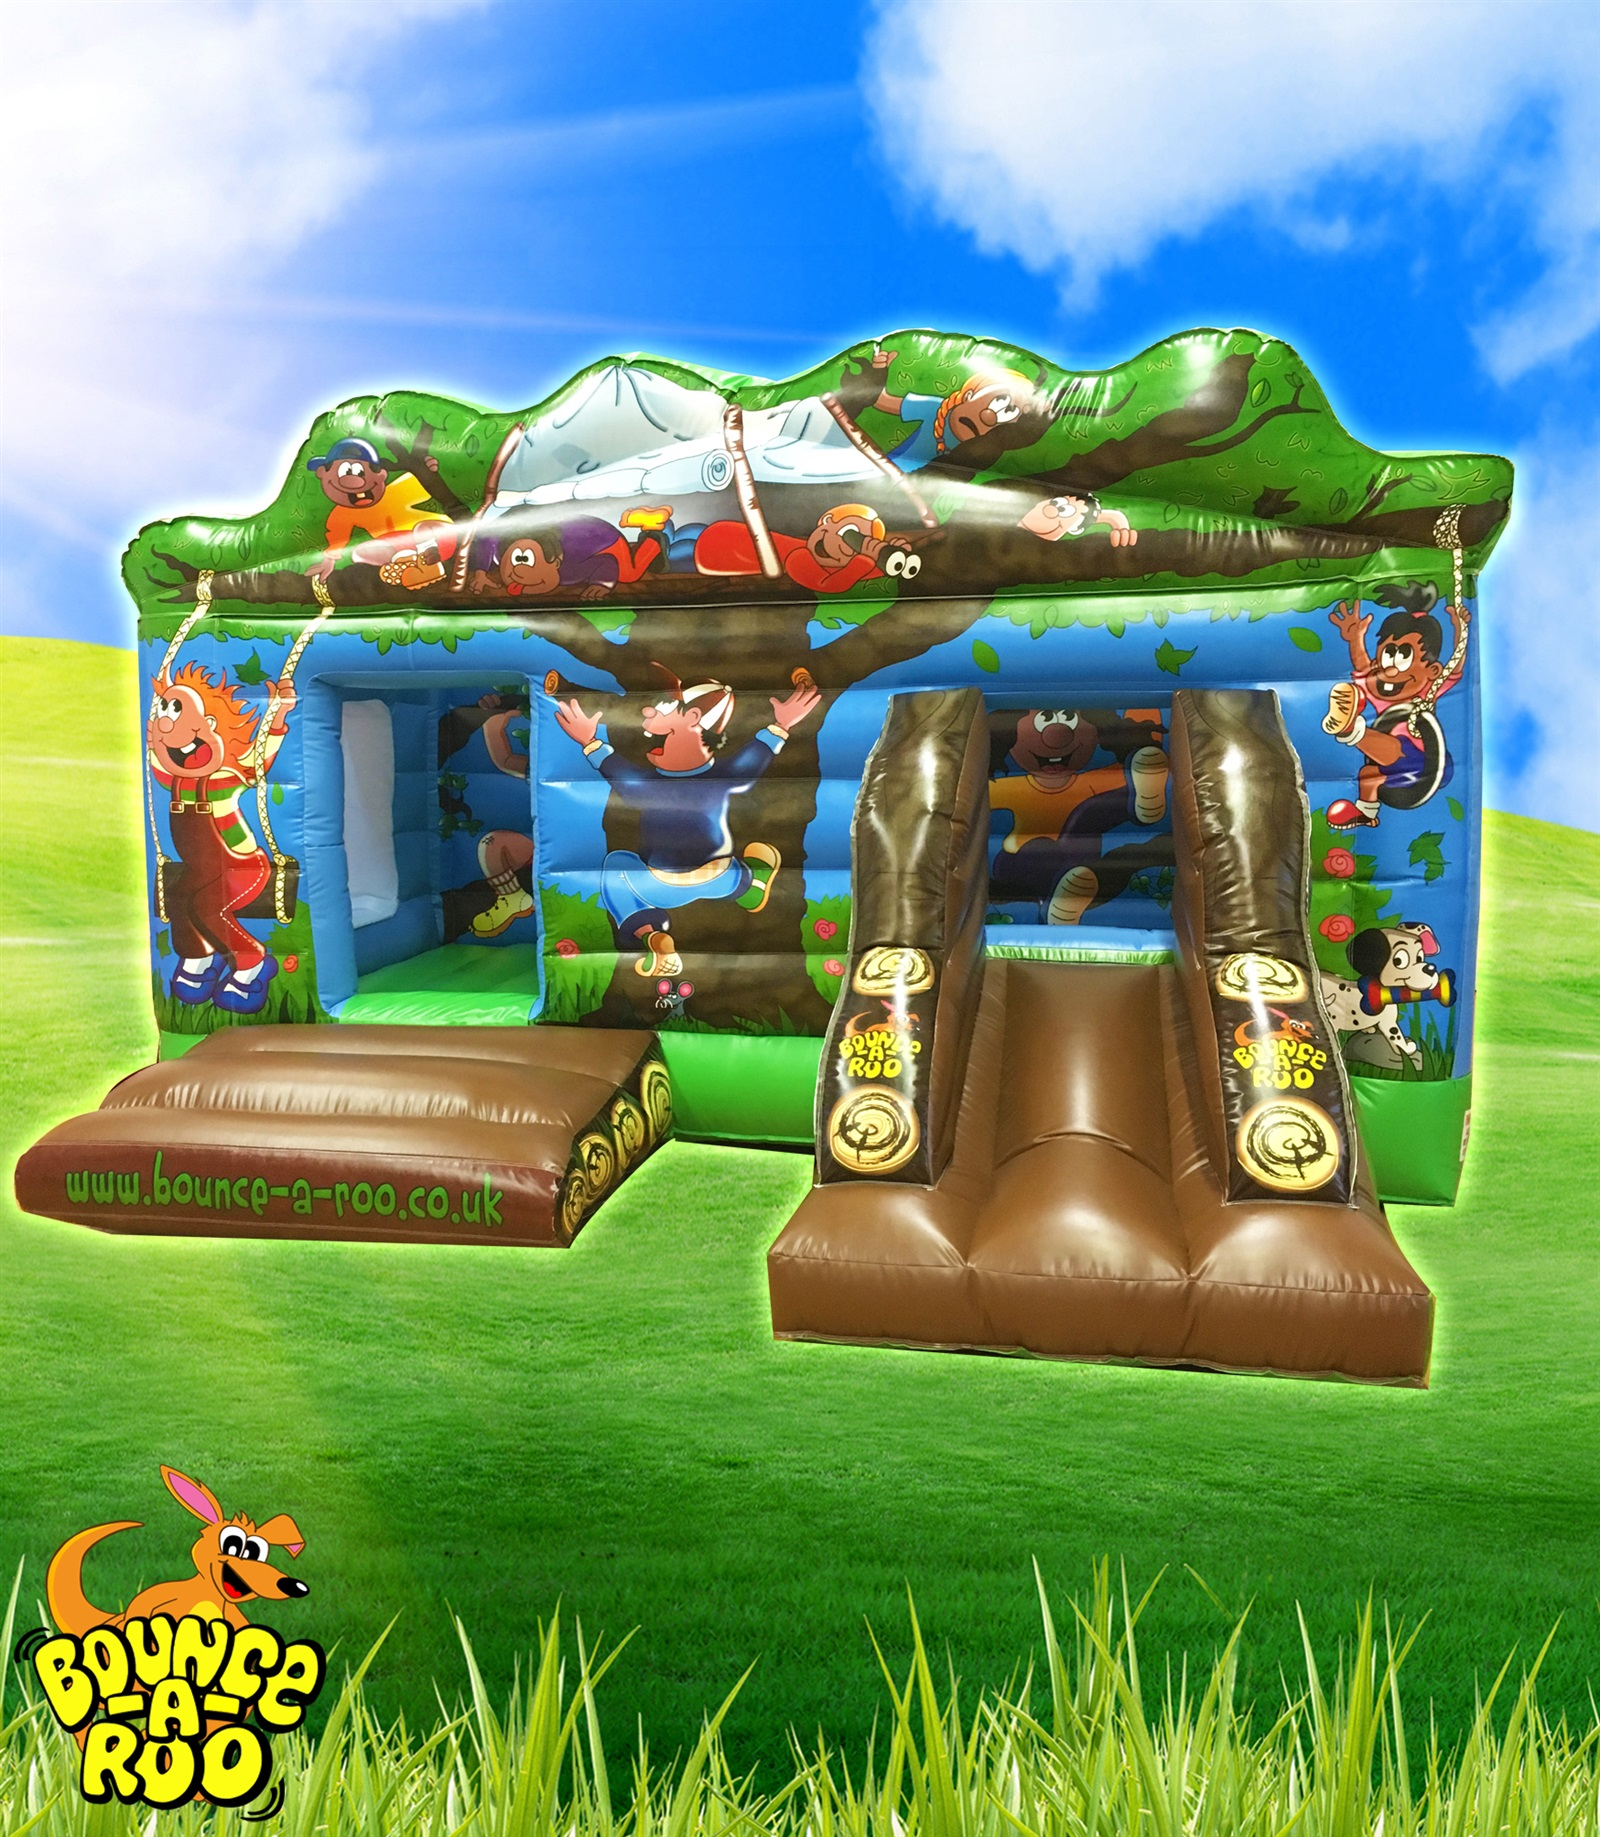 Every Party Needs To Be Crashed Amenadiel S Here For: Bouncy Castle Hire In West Wiltshire And Bath